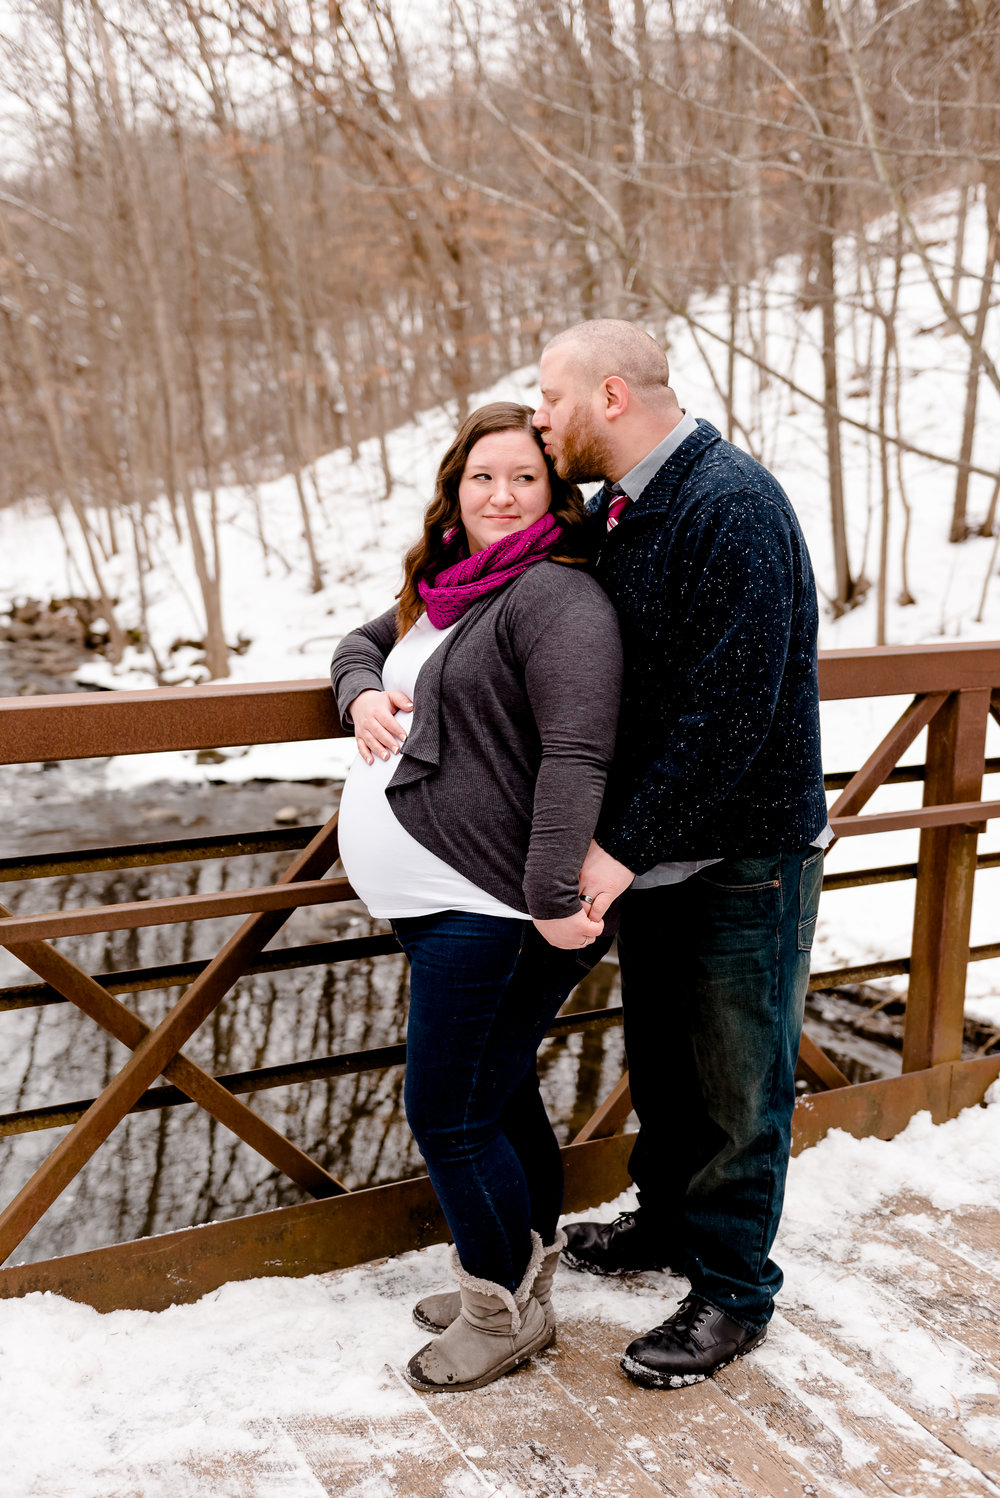 Maternity Photos on a Bridge - Nine Mile Creek Park Maternity Photography Session